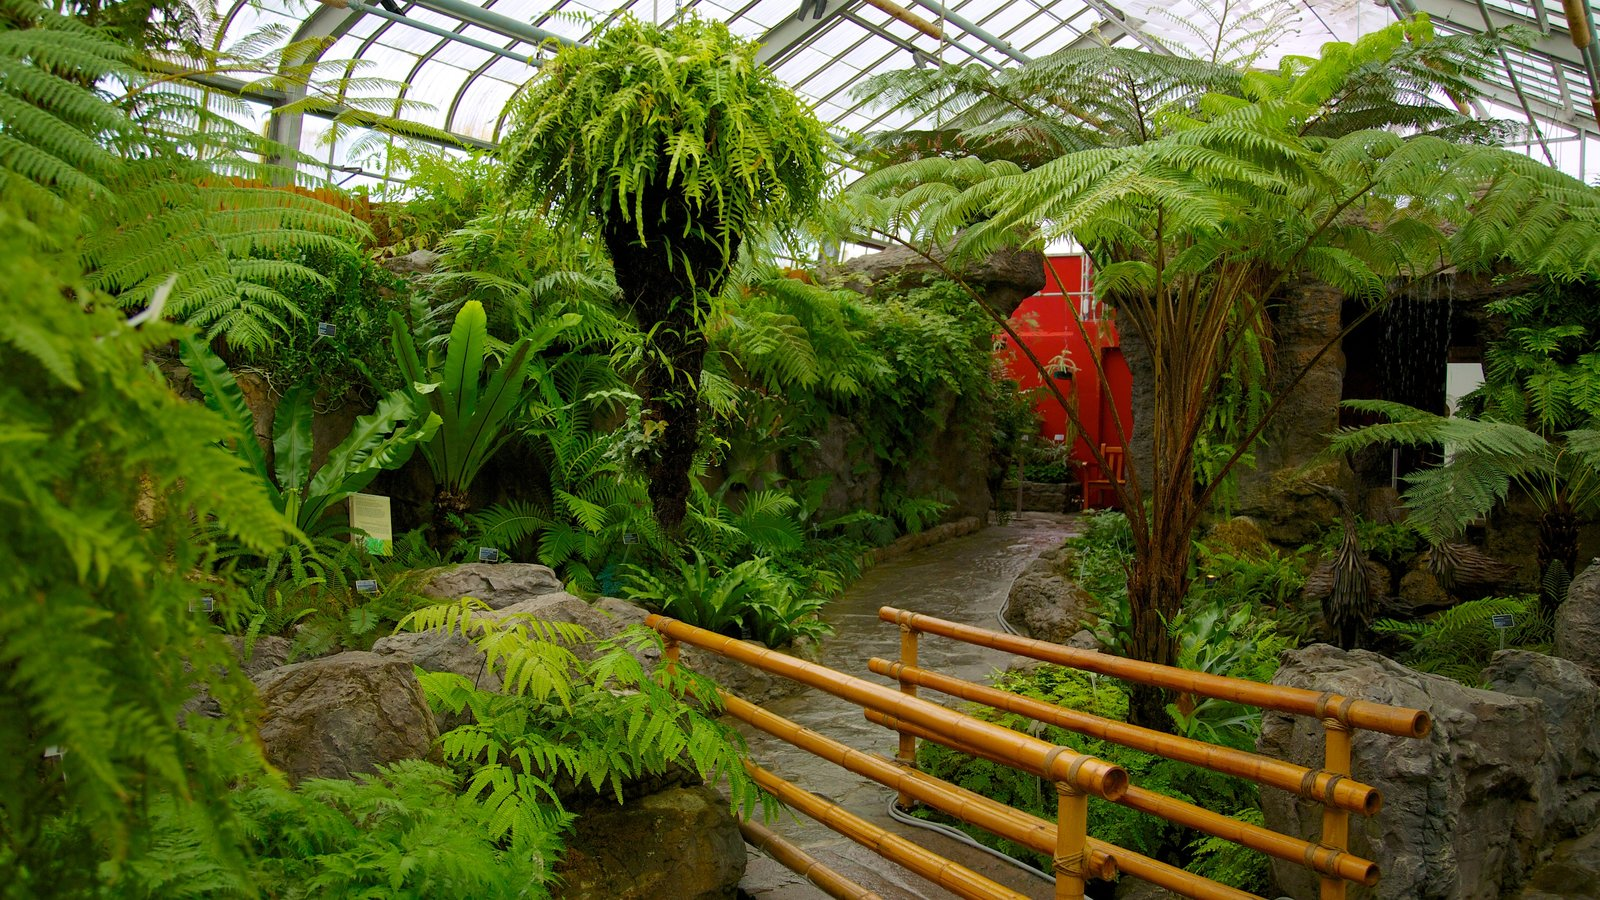 Montreal Botanical Garden Which Includes A Garden And Interior Views